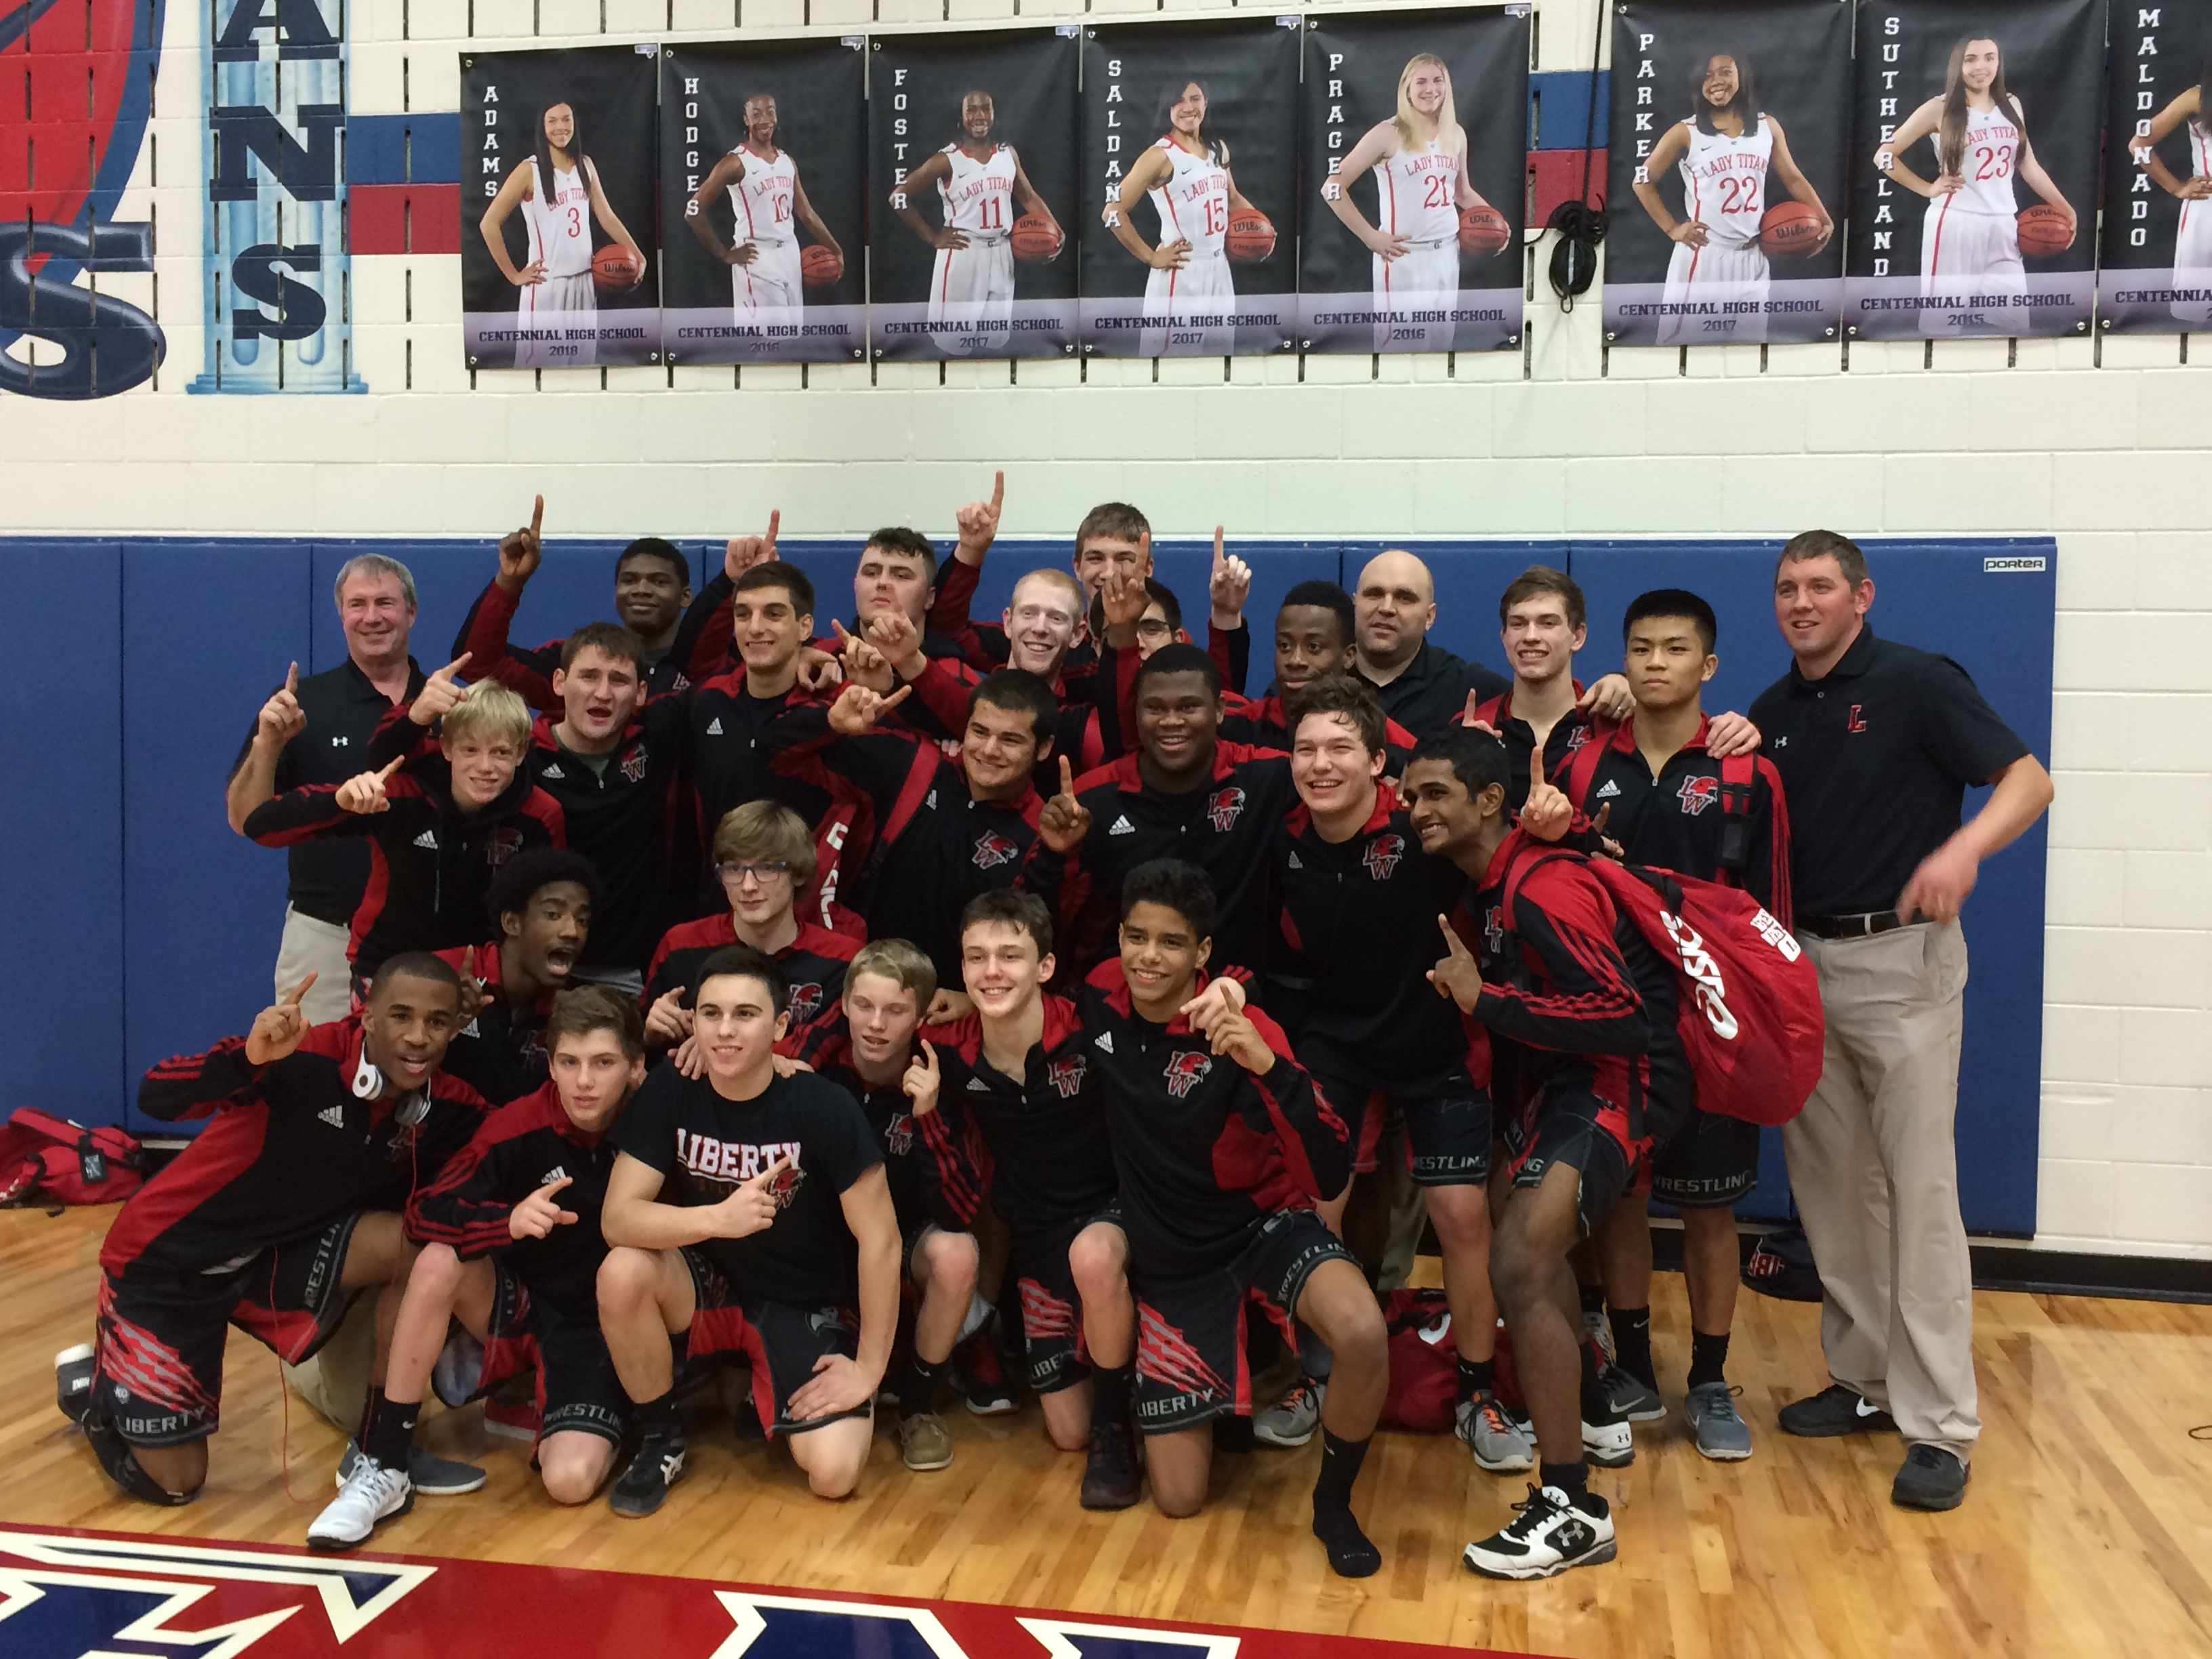 2015 District Dual Champions